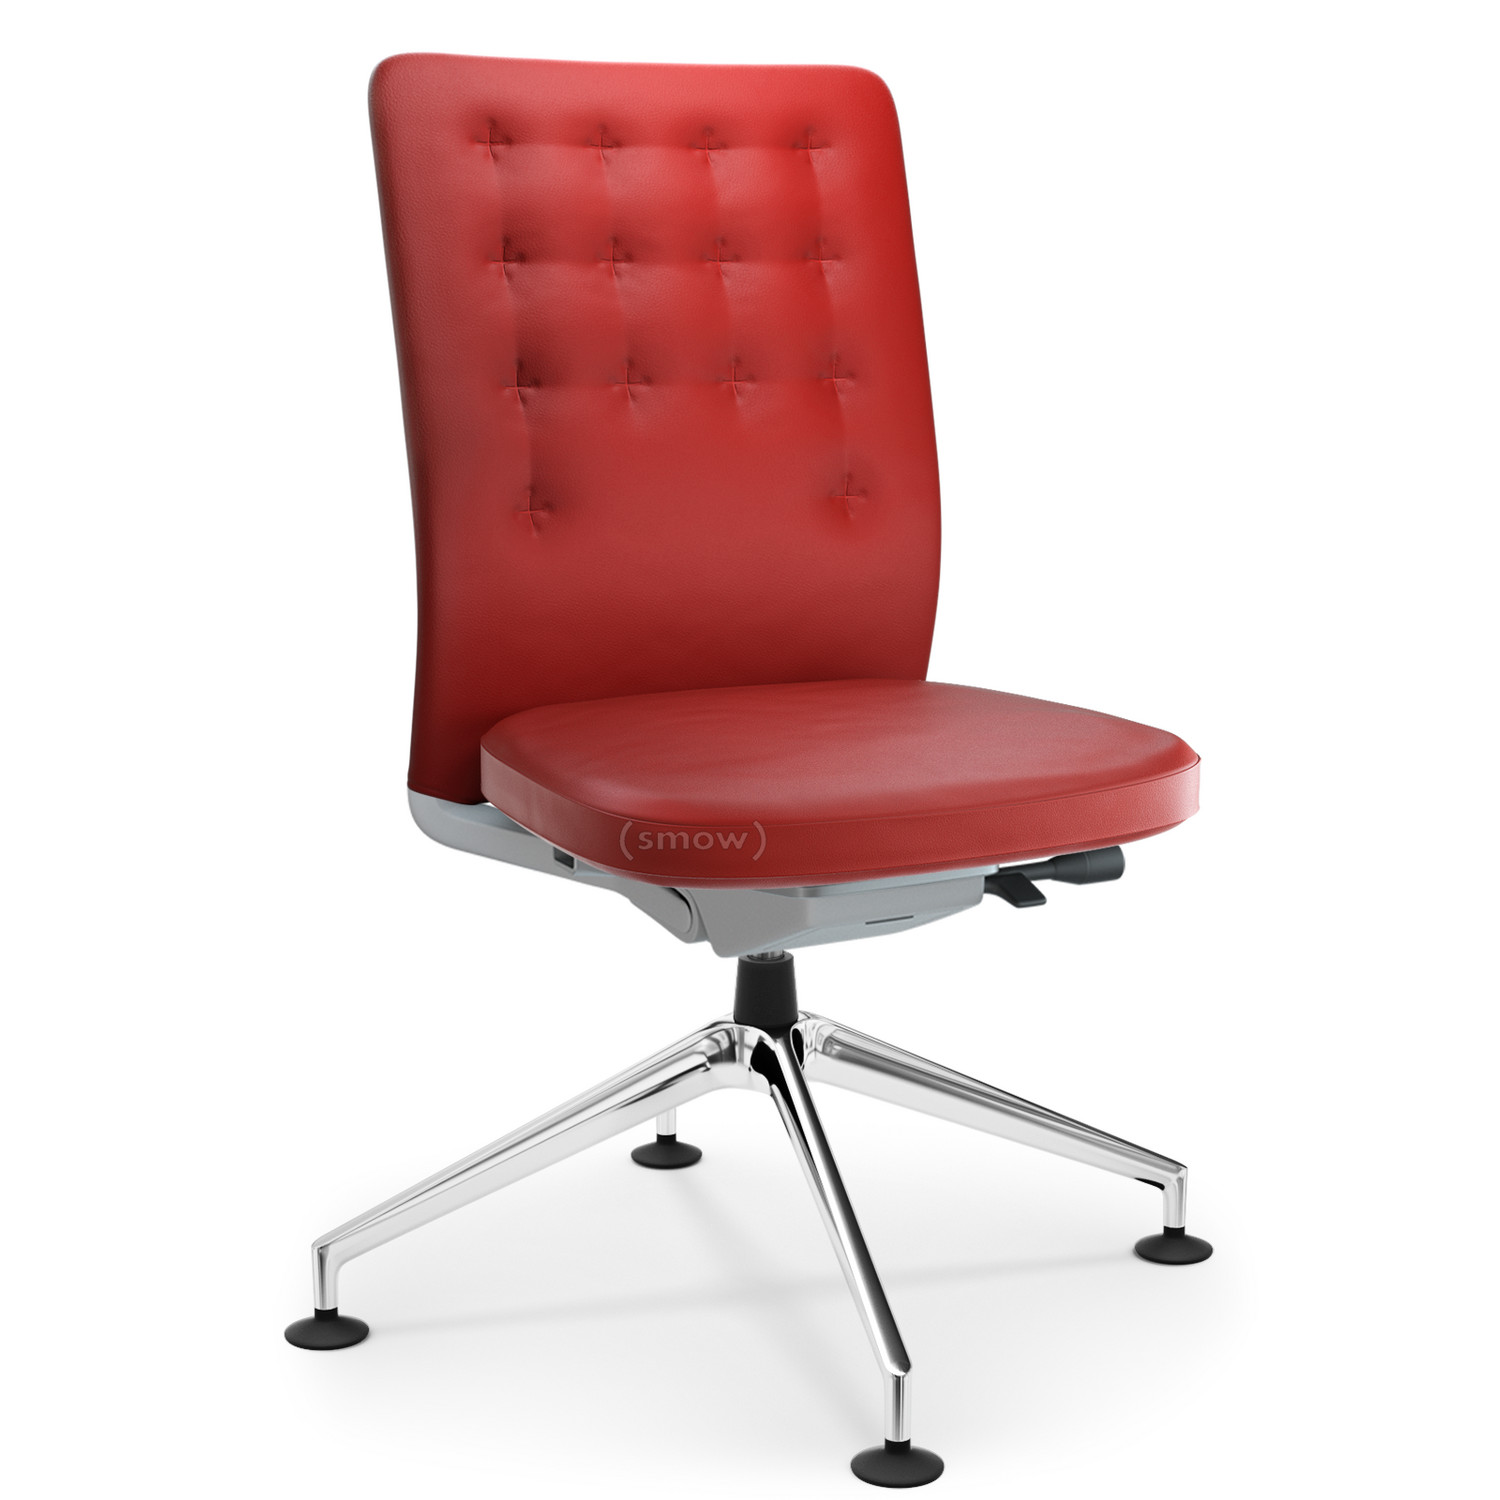 vitra id trim conference without lumbar support without armrests rh smow com